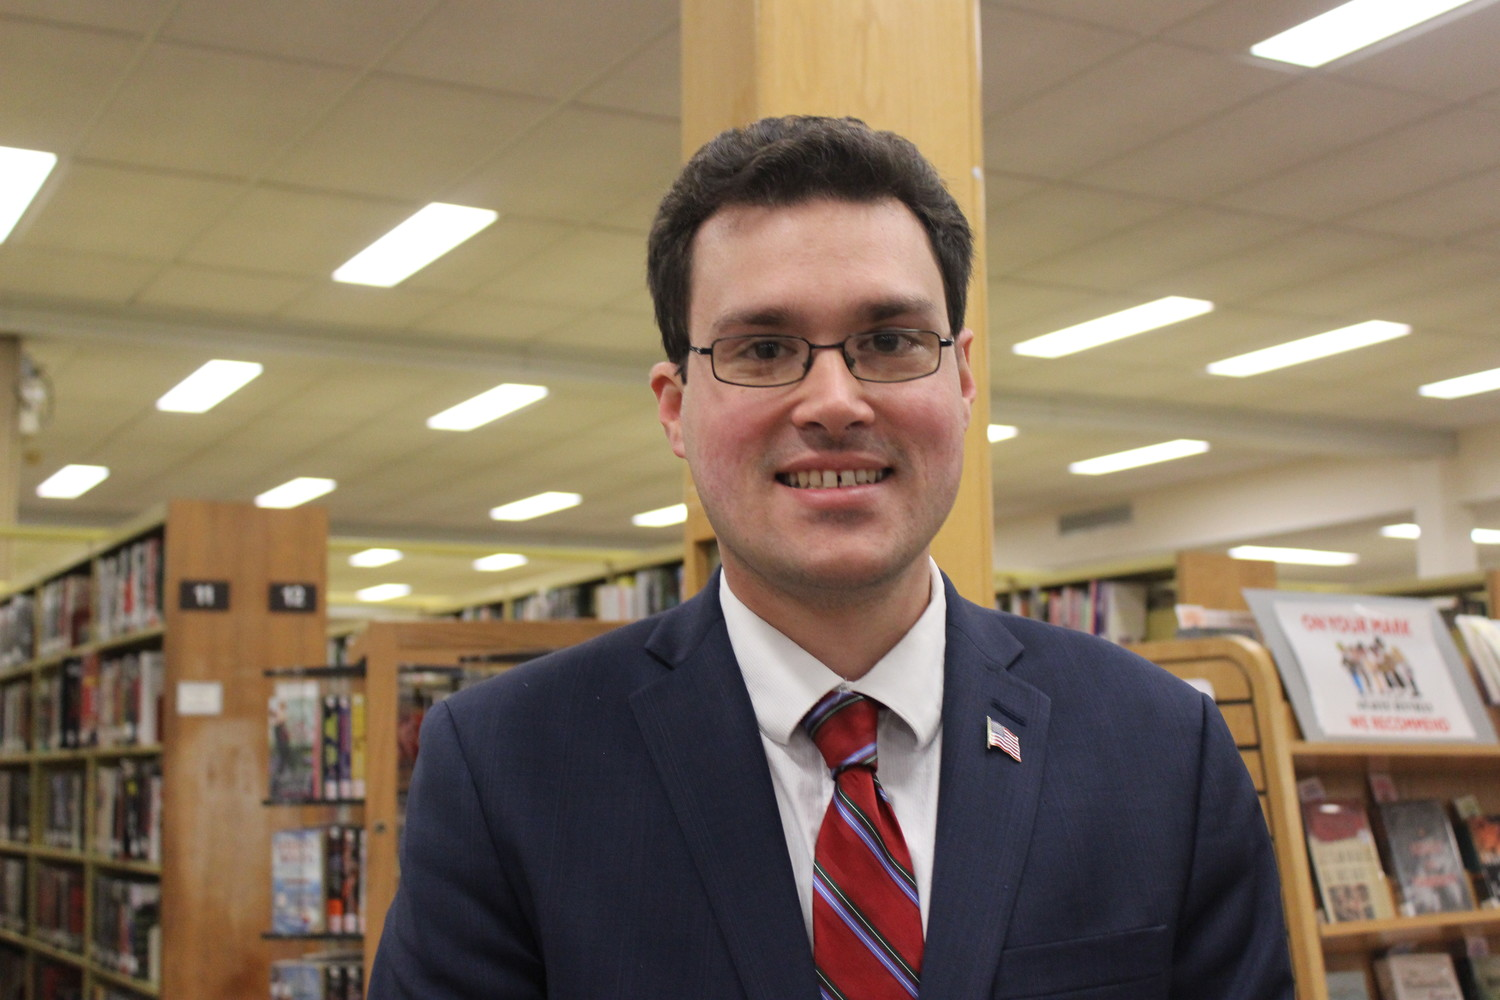 John Mikulin, 30, of Levittown, won the Republican primary in the New York State Assembly's 17th District over challenger James Coll, 45, of Seaford.